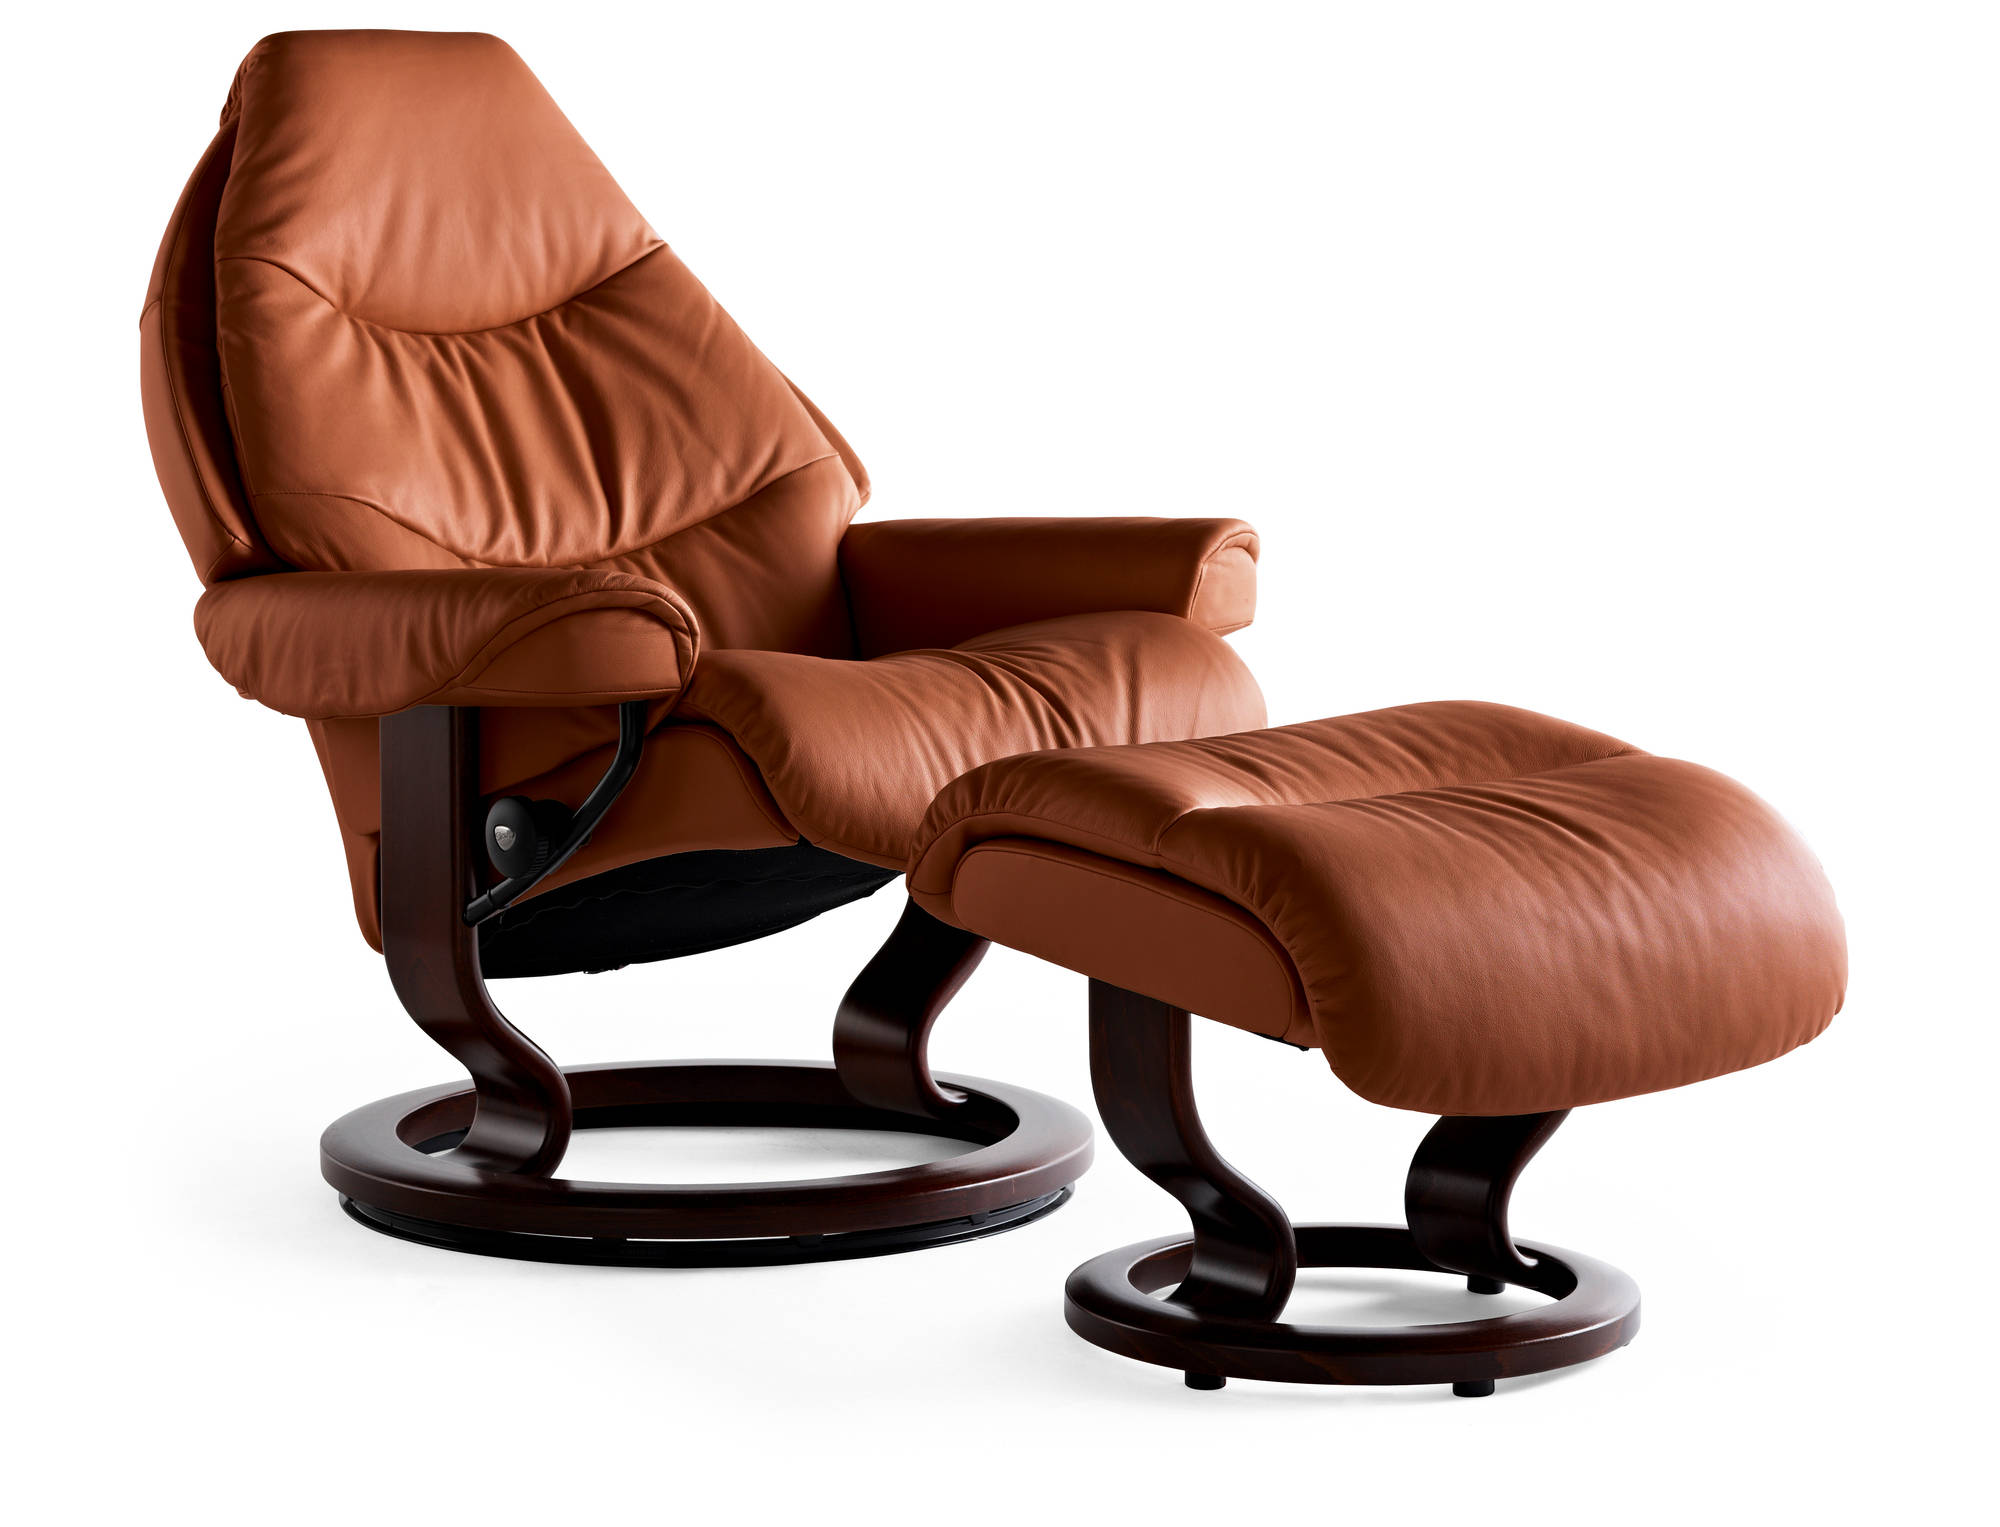 Tigereye Royalin Leather Voyager Recliner by Ekornes